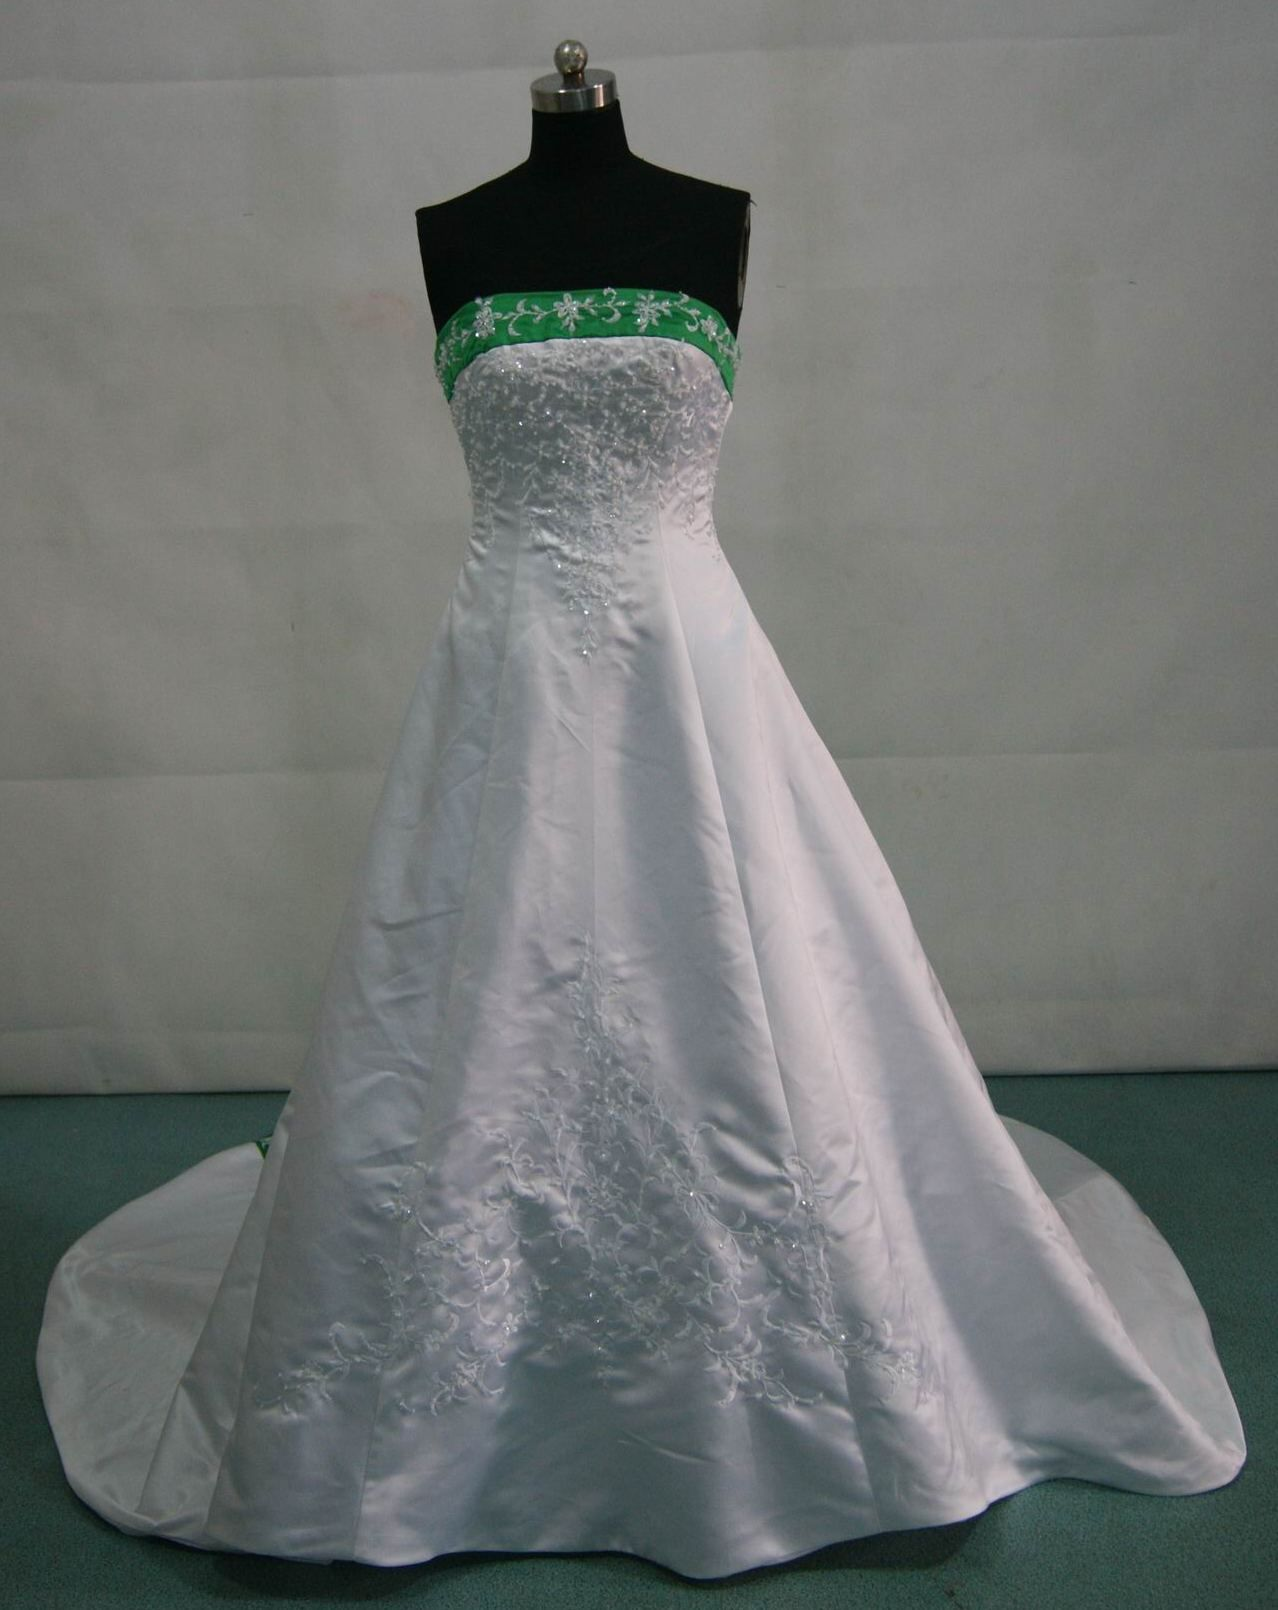 Now the front... white and emerald green wedding dress! I ...